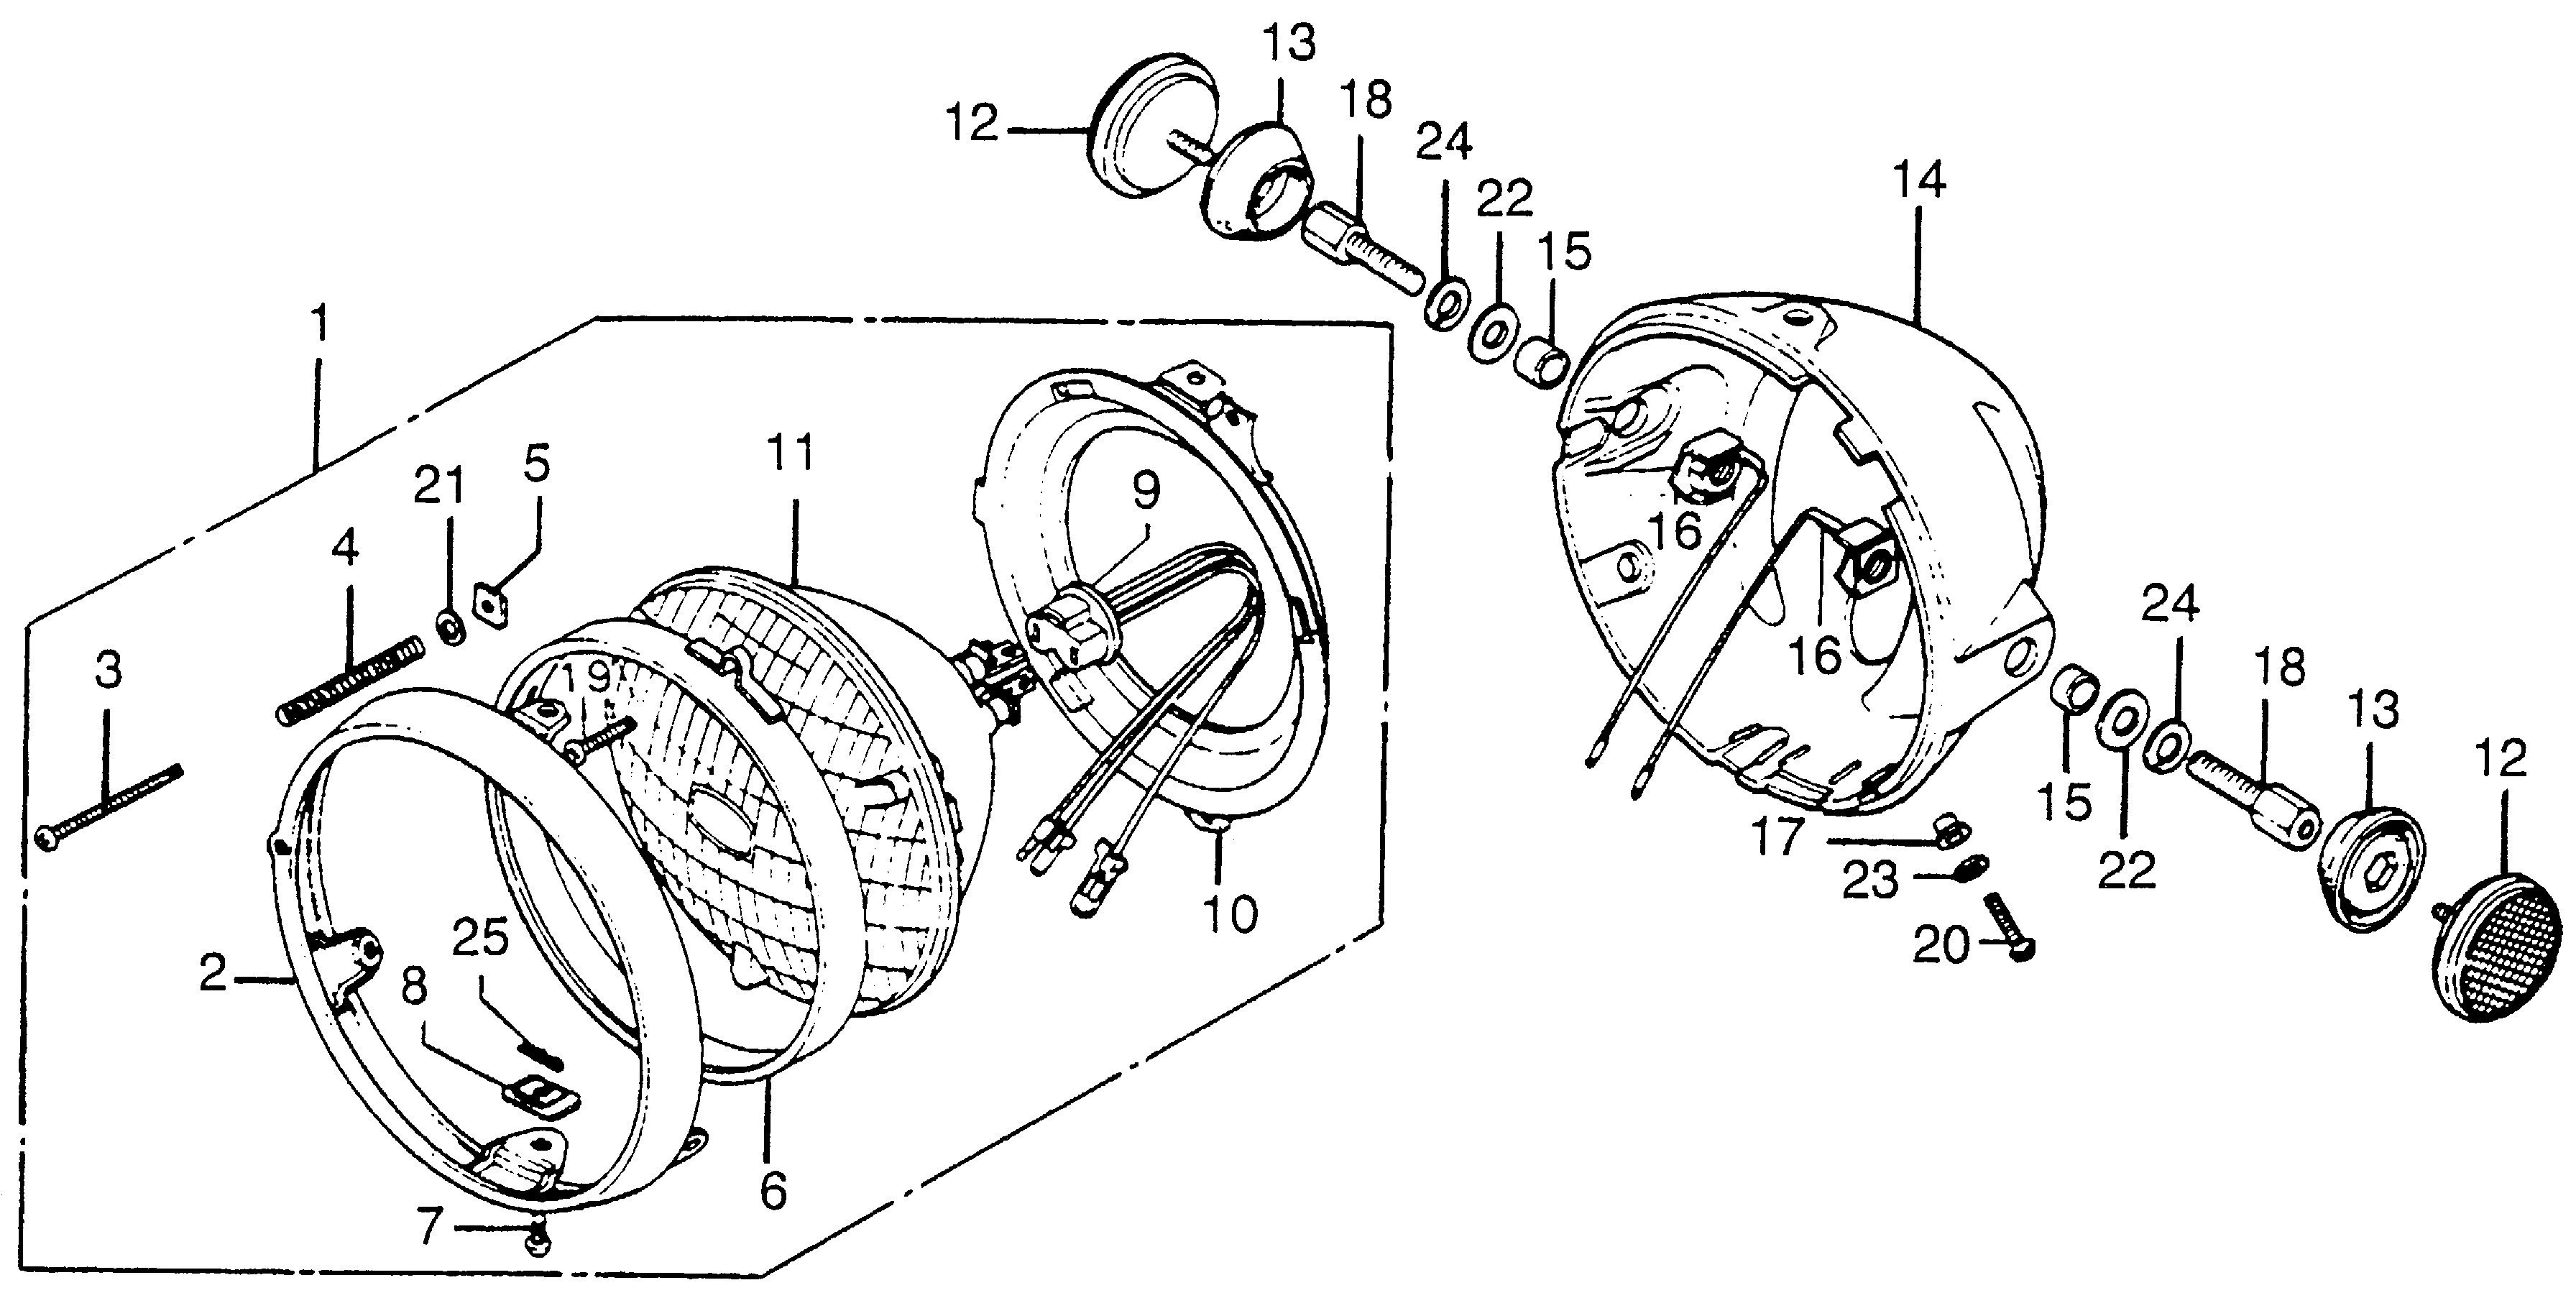 Diagram Of Honda Motorcycle Parts 2005 Rvt1000r A Alternator Diagram